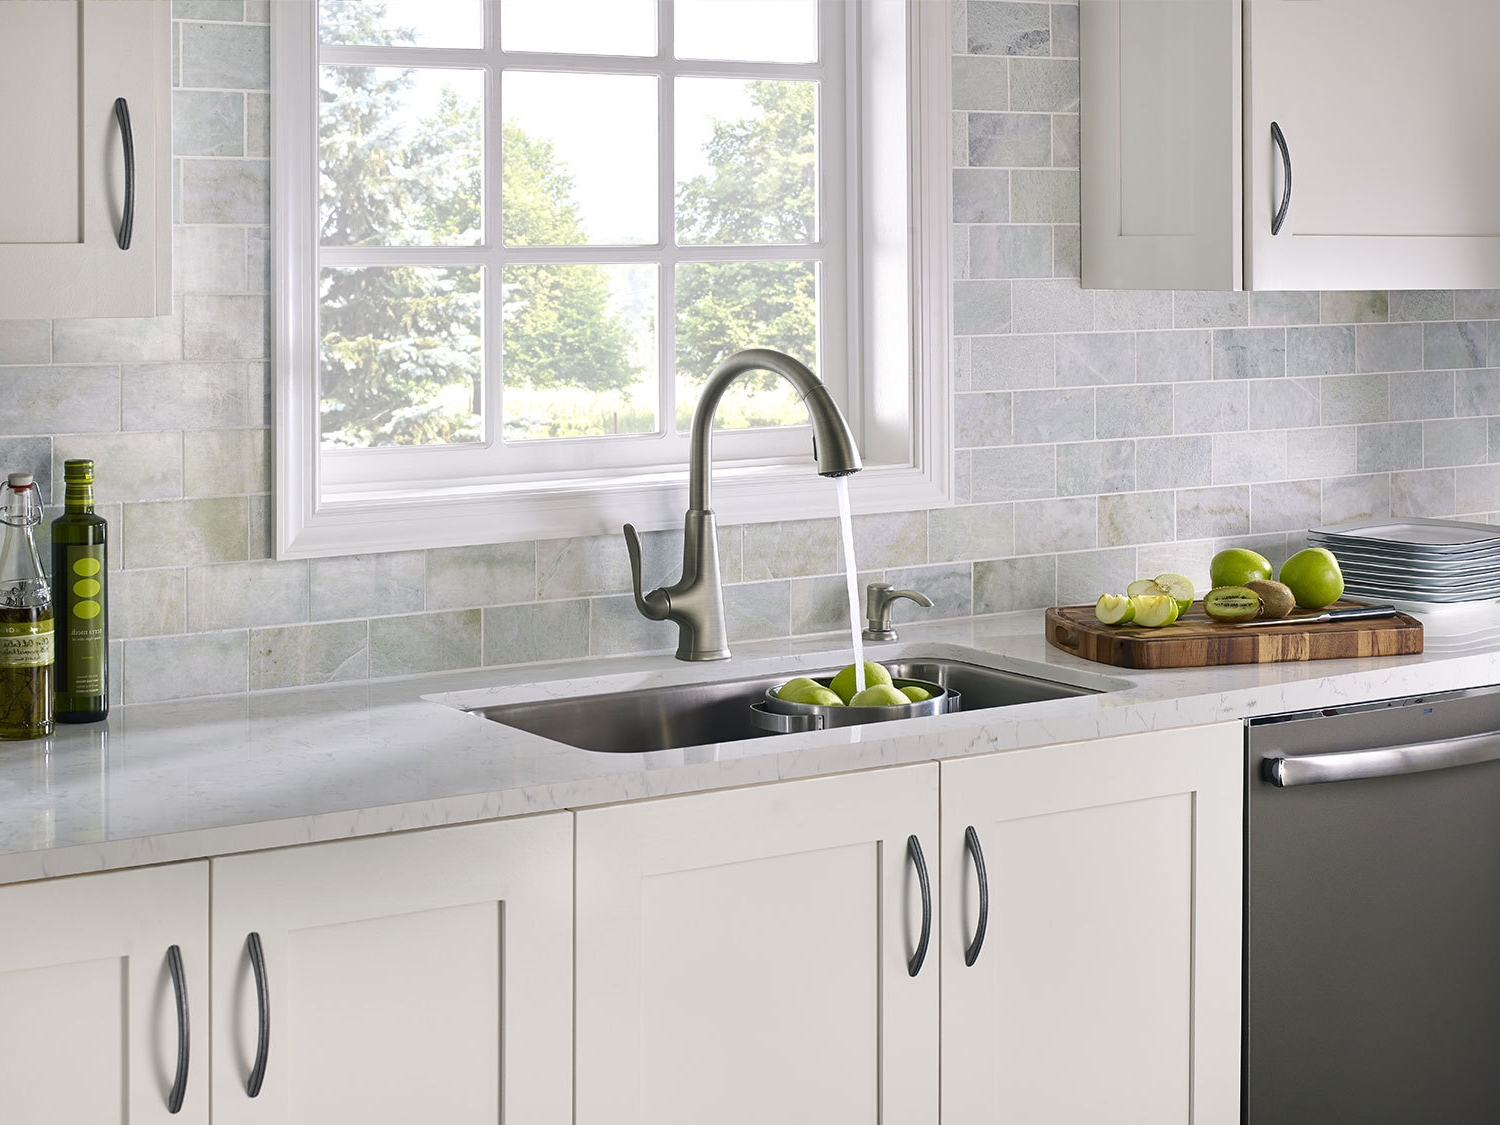 Get Affordable Sleek Sophisticated Fancy Countertops For Your